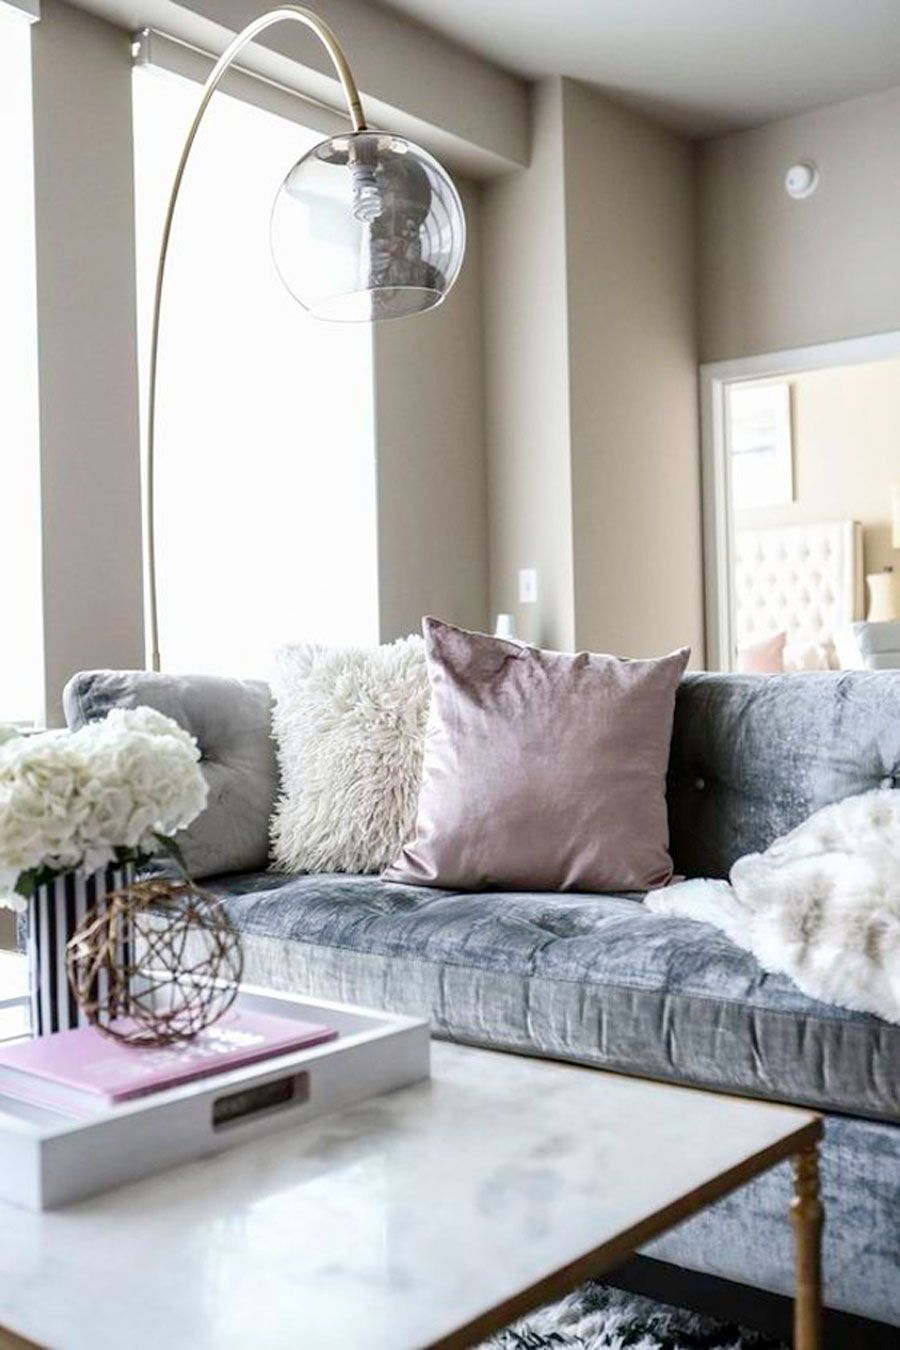 Get The Monochrome Trend With A Silver Floor Lamp! 2